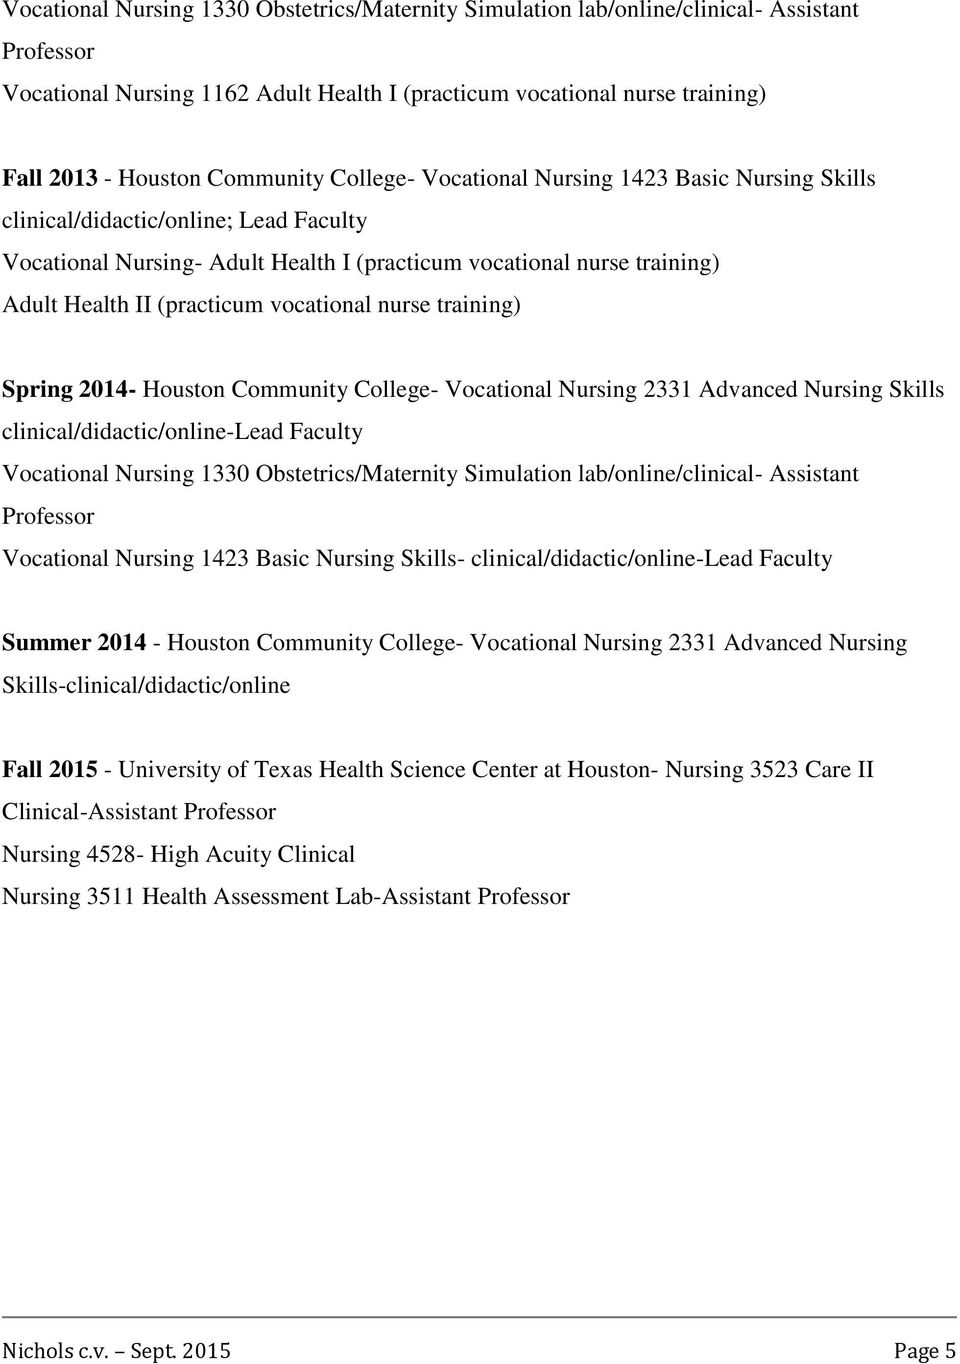 vocational nurse training) Spring 2014- Houston Community College- Vocational Nursing 2331 Advanced Nursing Skills clinical/didactic/online-lead Faculty Vocational Nursing 1330 Obstetrics/Maternity